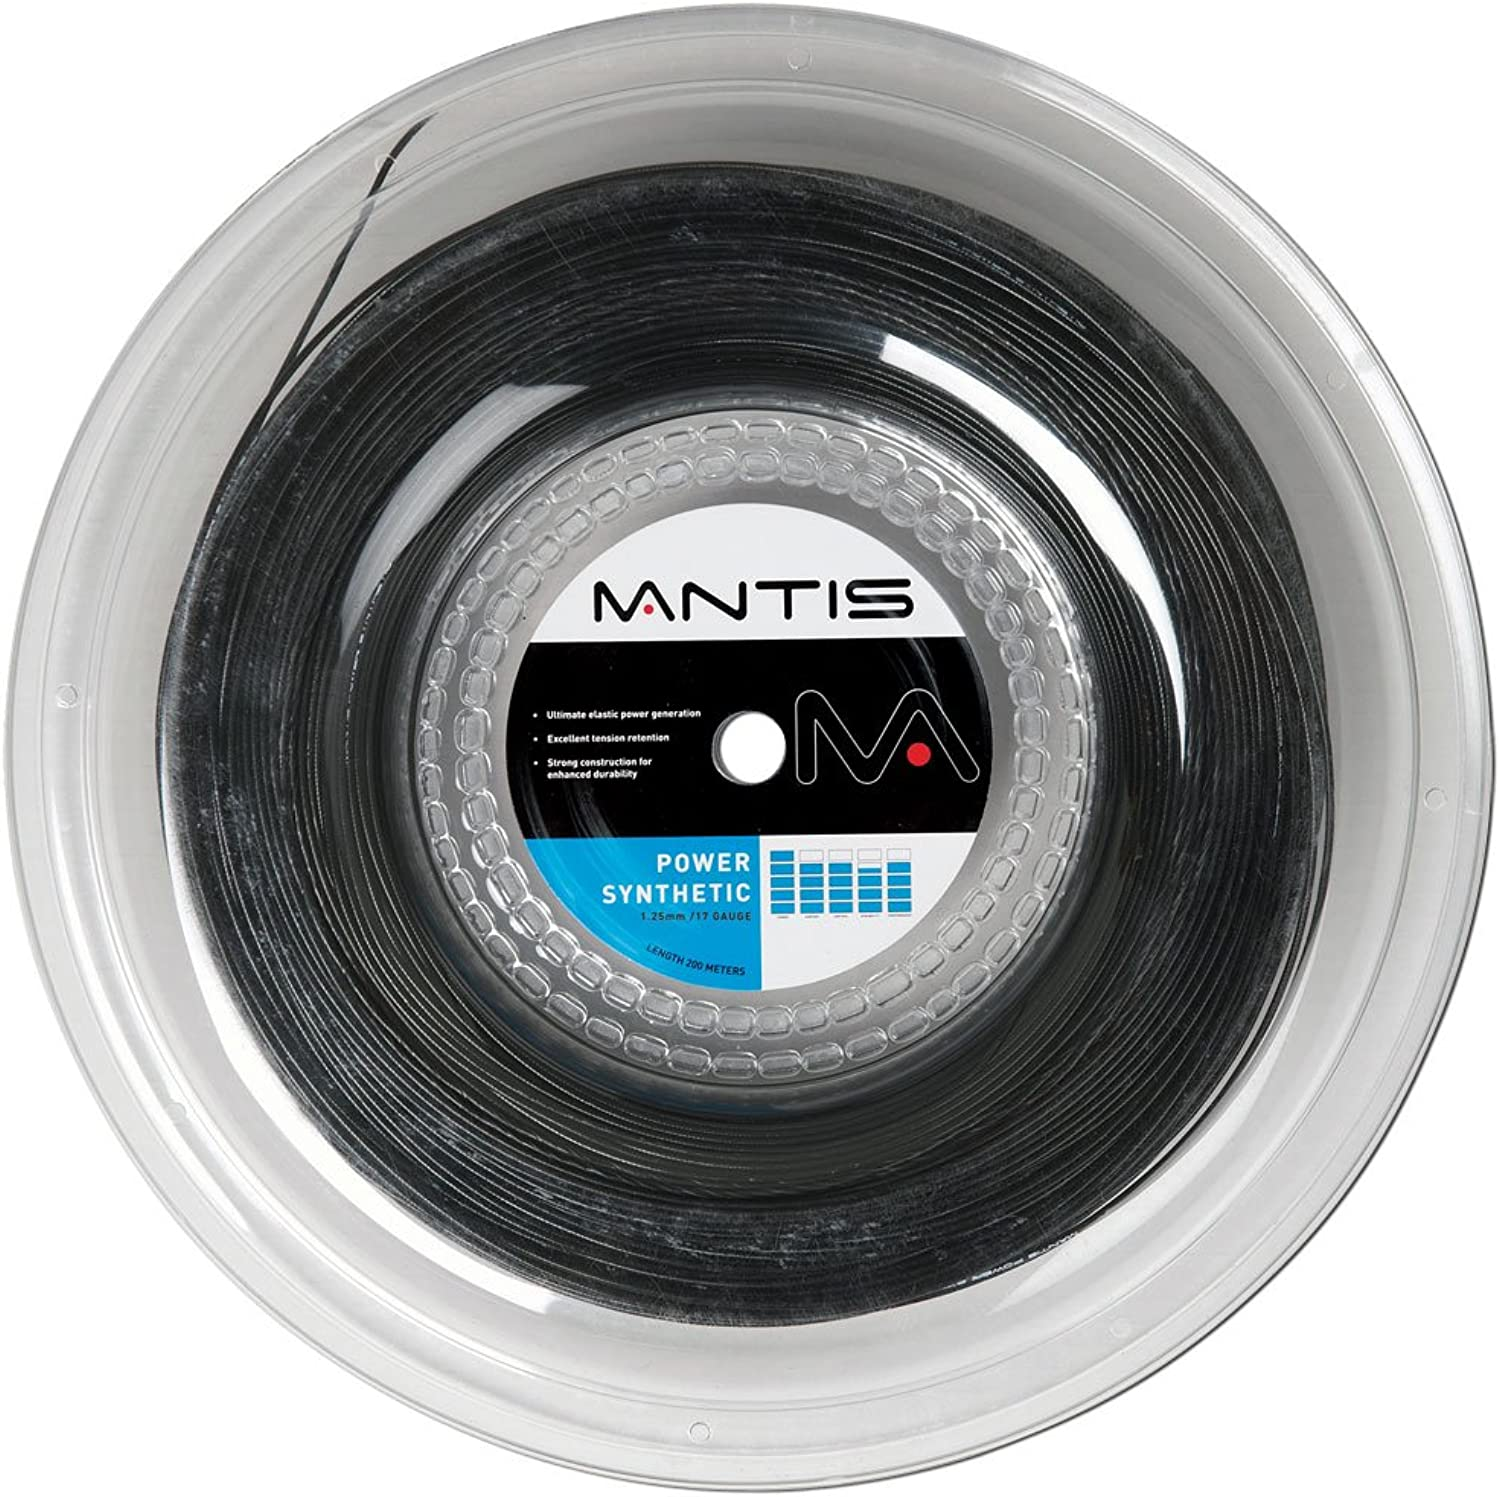 Mantis Power Synthetic Tennis String  200m Reel color Amber